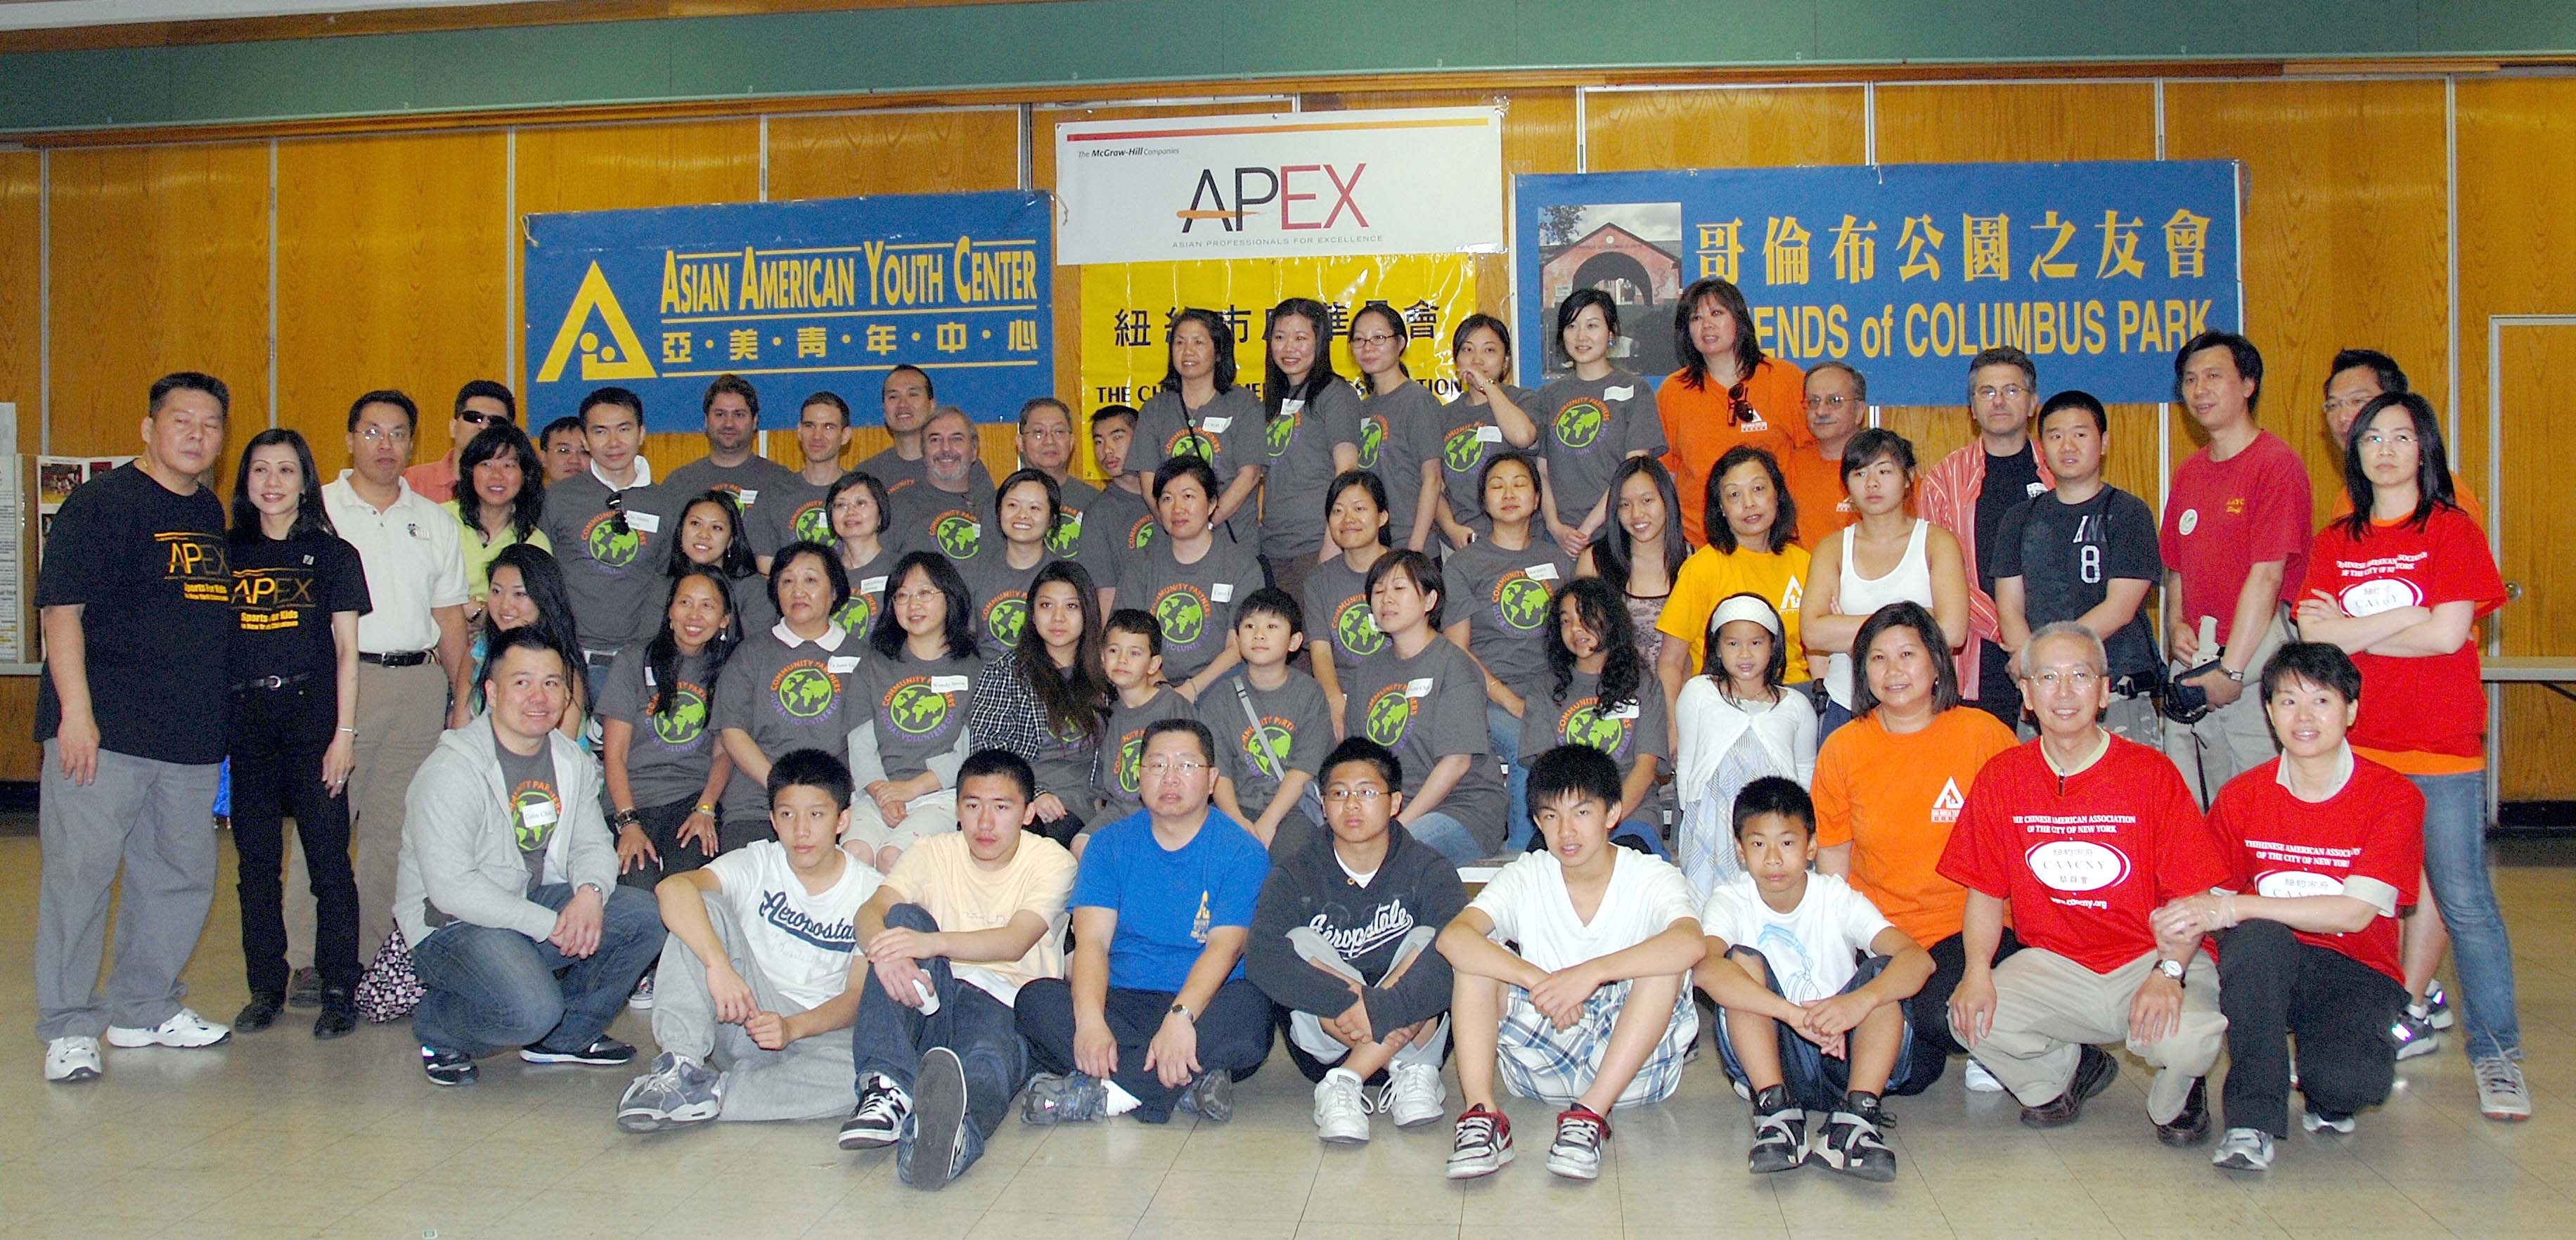 asian youth center Asian youth council (ayc) is a non-governmental, youth serving, regional organization formed on the 14th of august 1972 to promote solidarity and family spirit among young people in asia as well as to strengthen national youth organizations in the region.